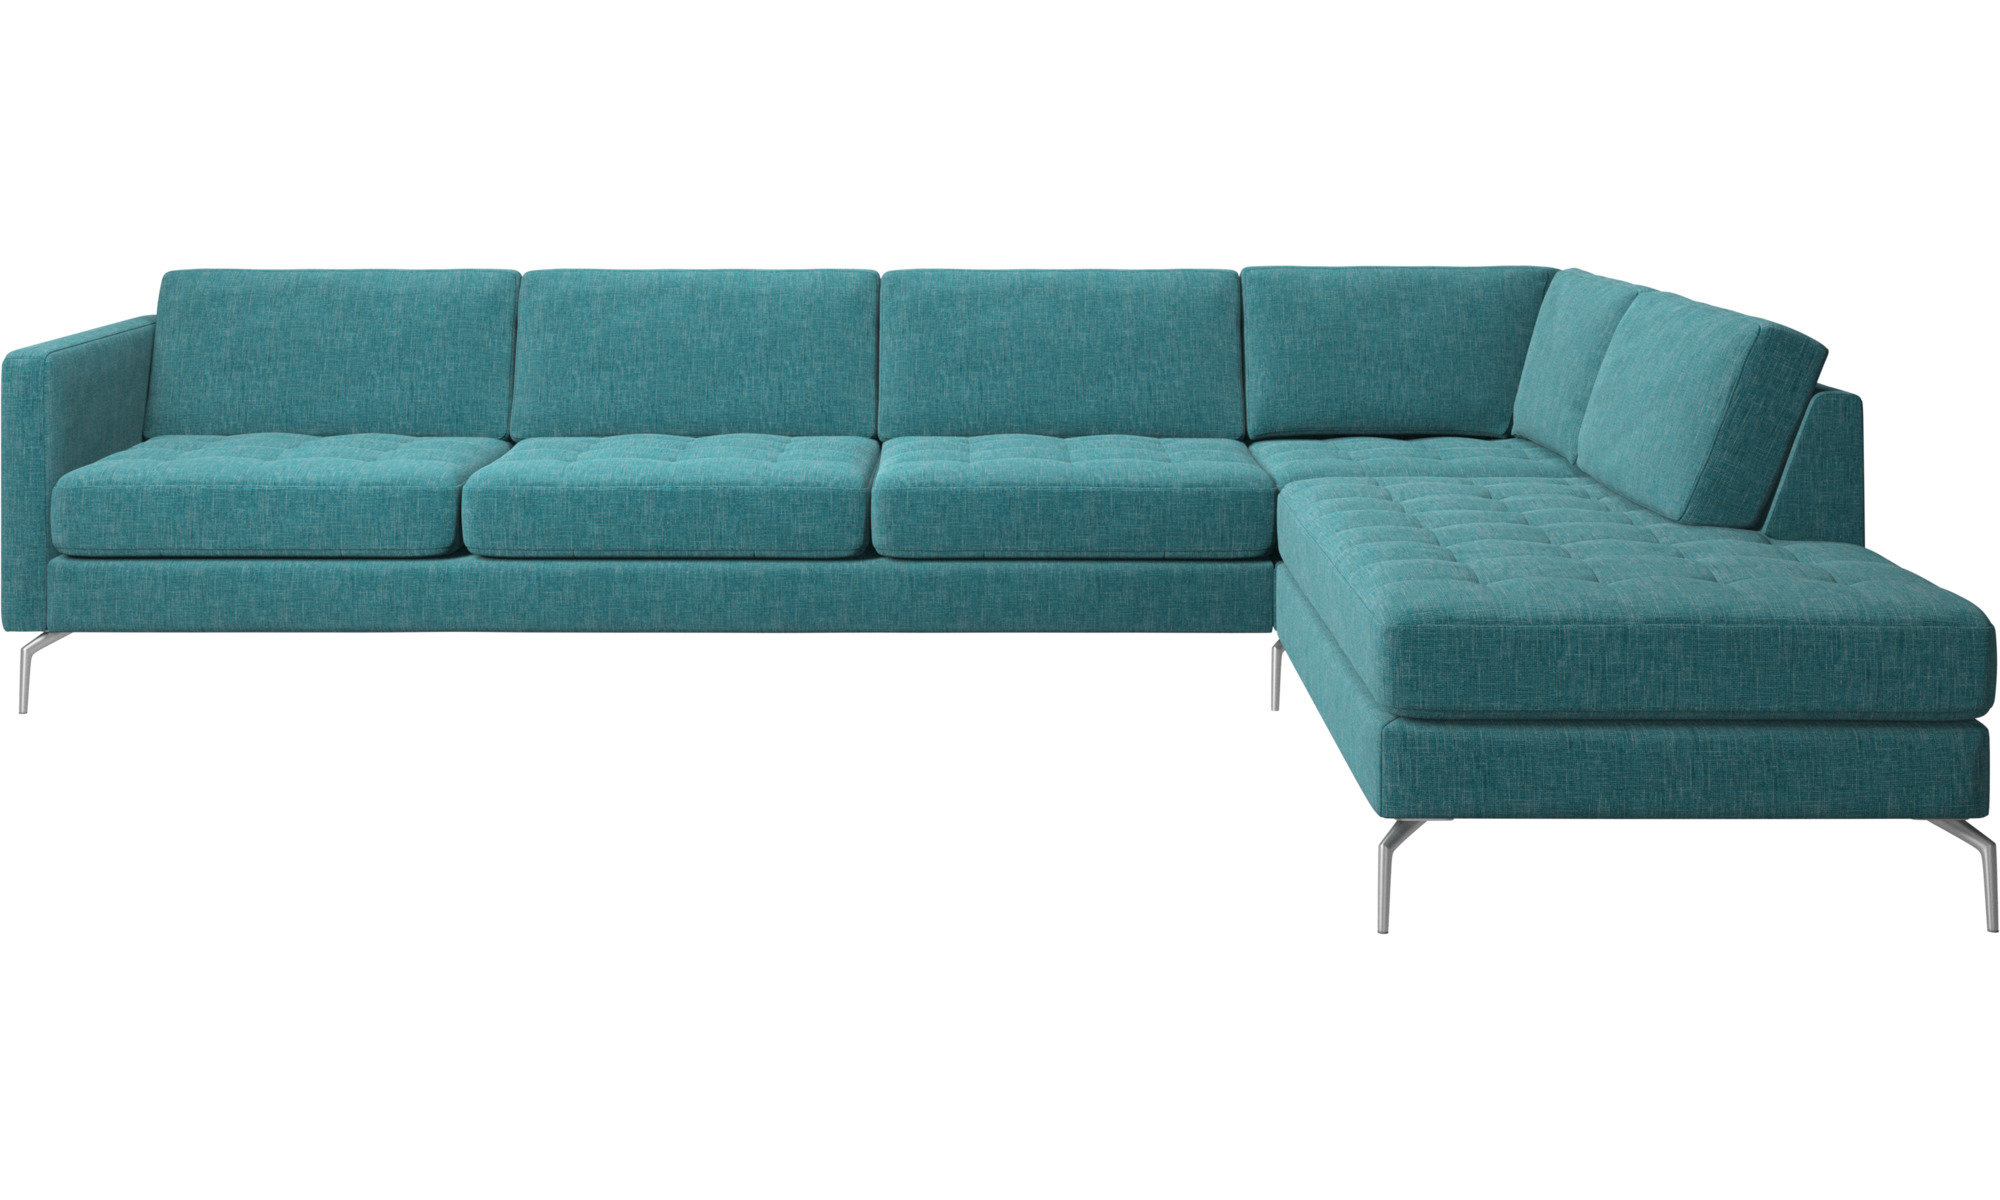 Sofas With Open End   Osaka Corner Sofa With Lounging Unit, Tufted Seat    Blue ...